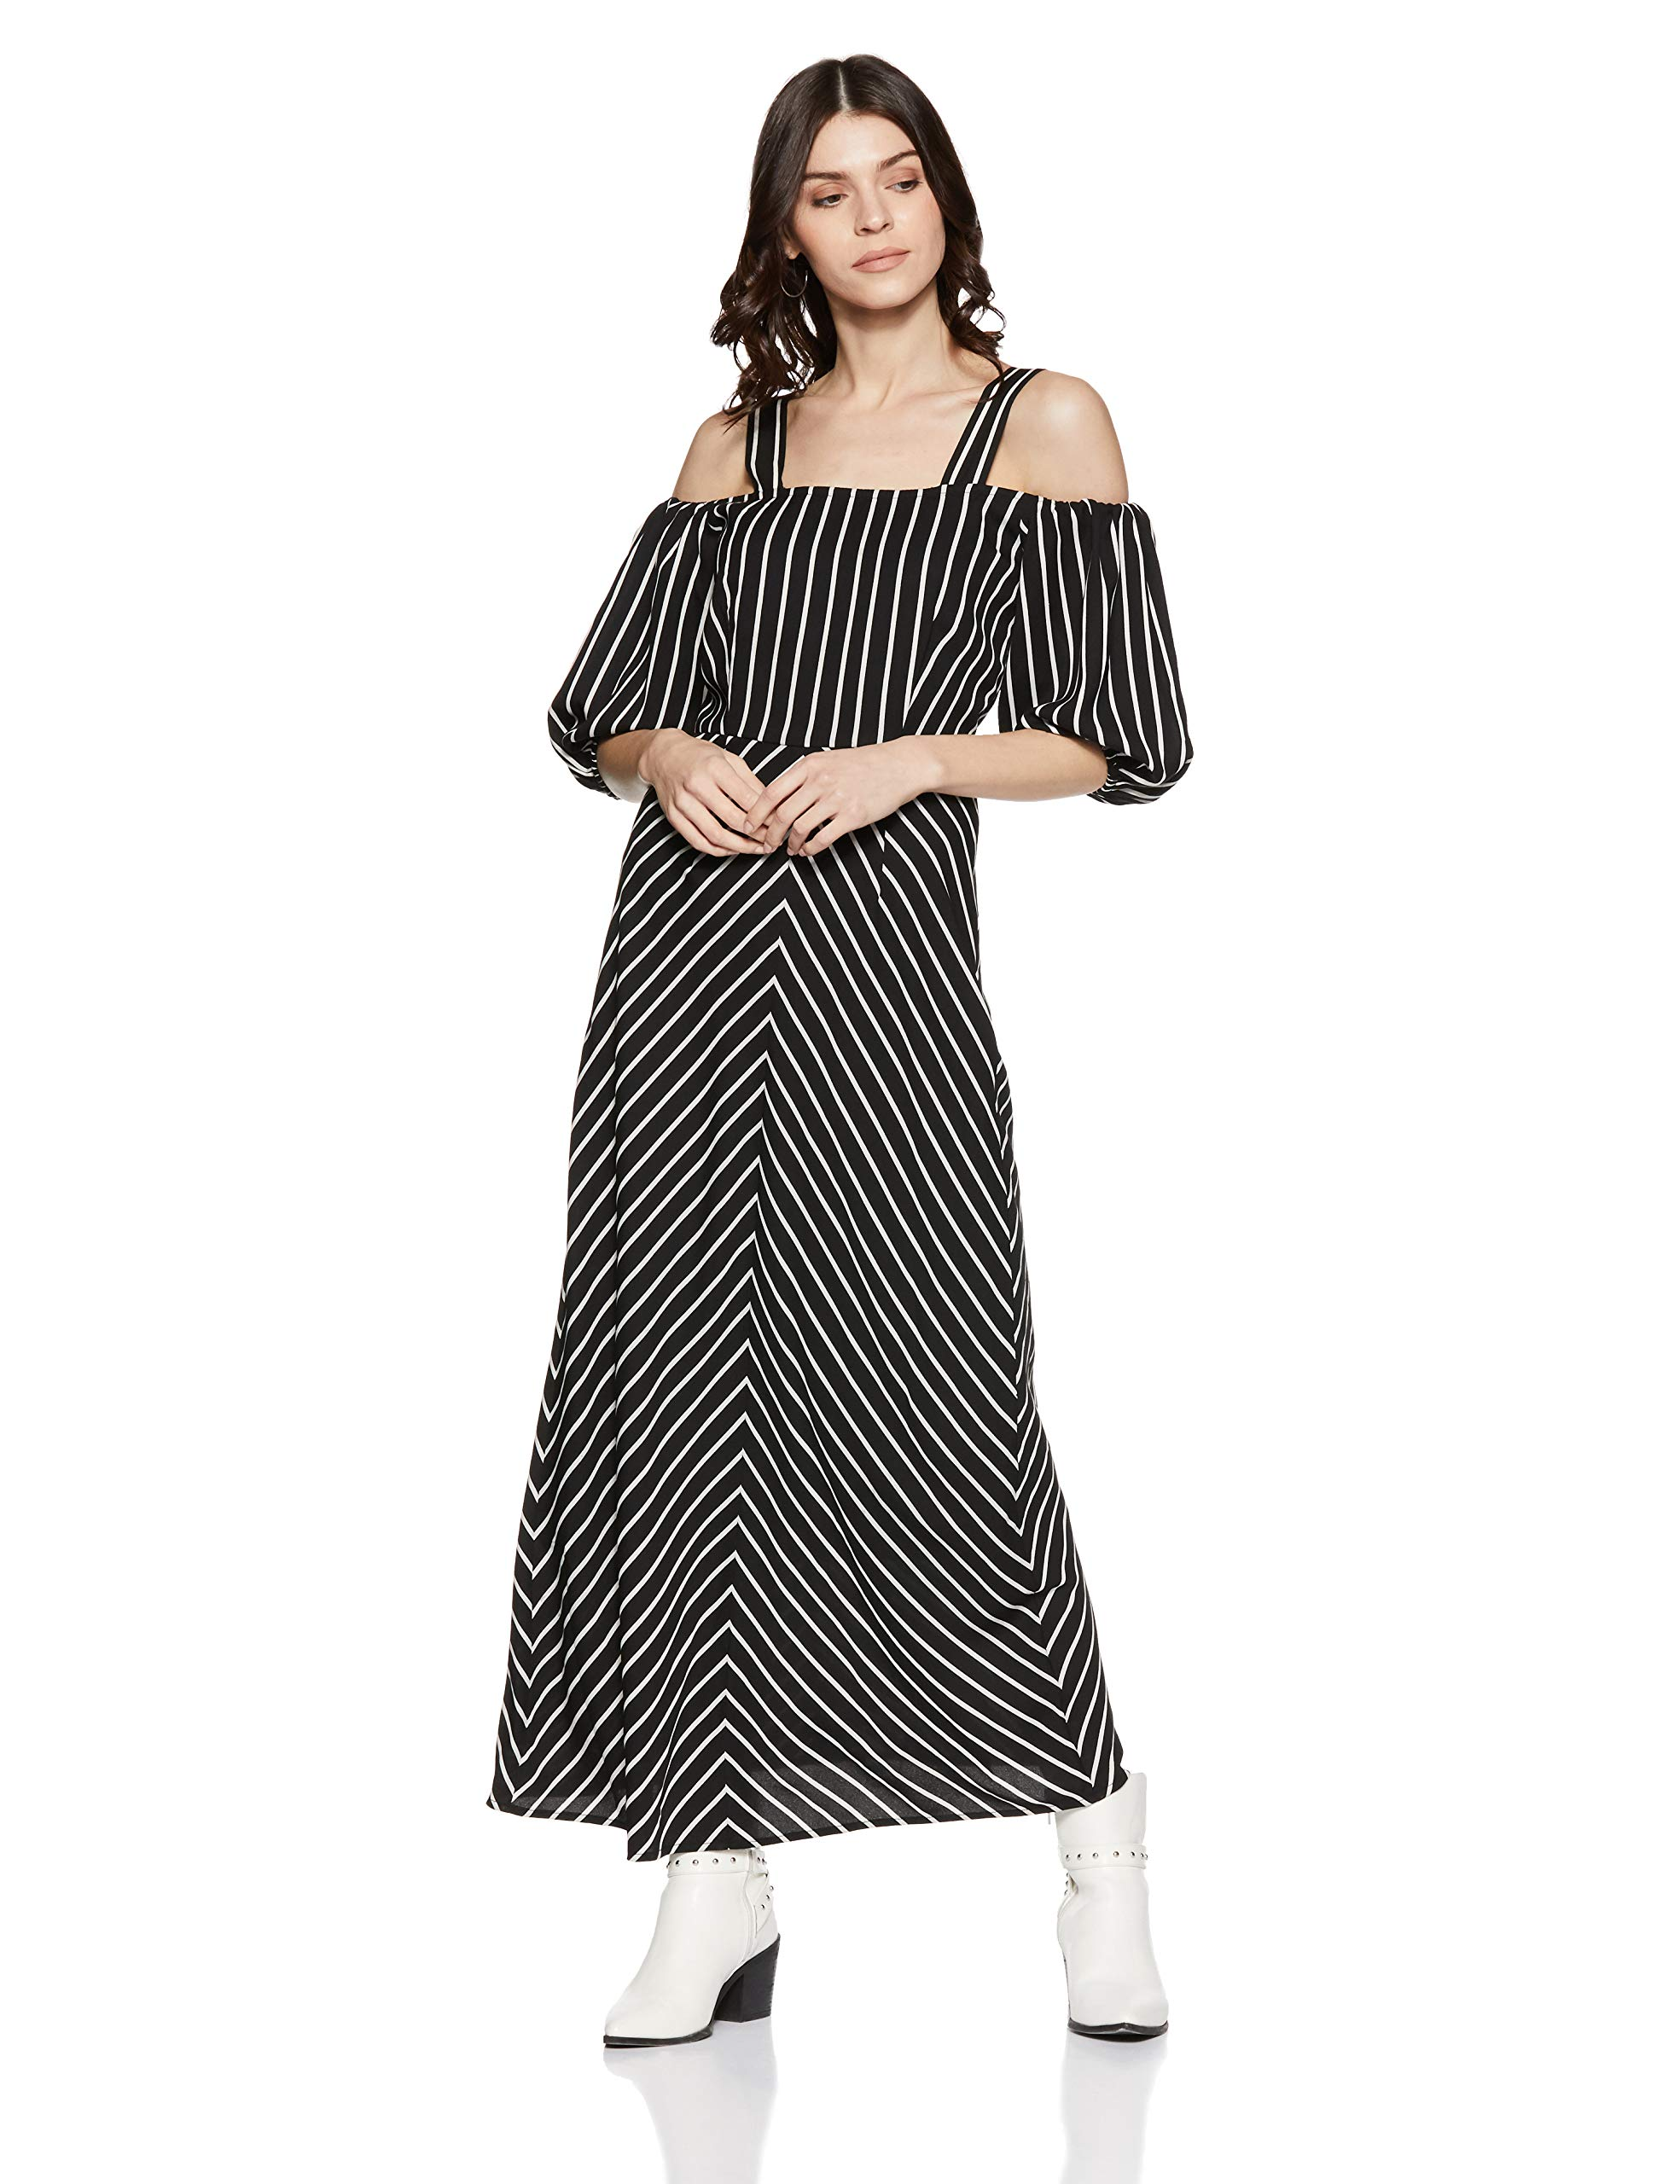 Stalk Buy Love Women's Georgette Striped Grechen Cold Shoulder Maxi Dress